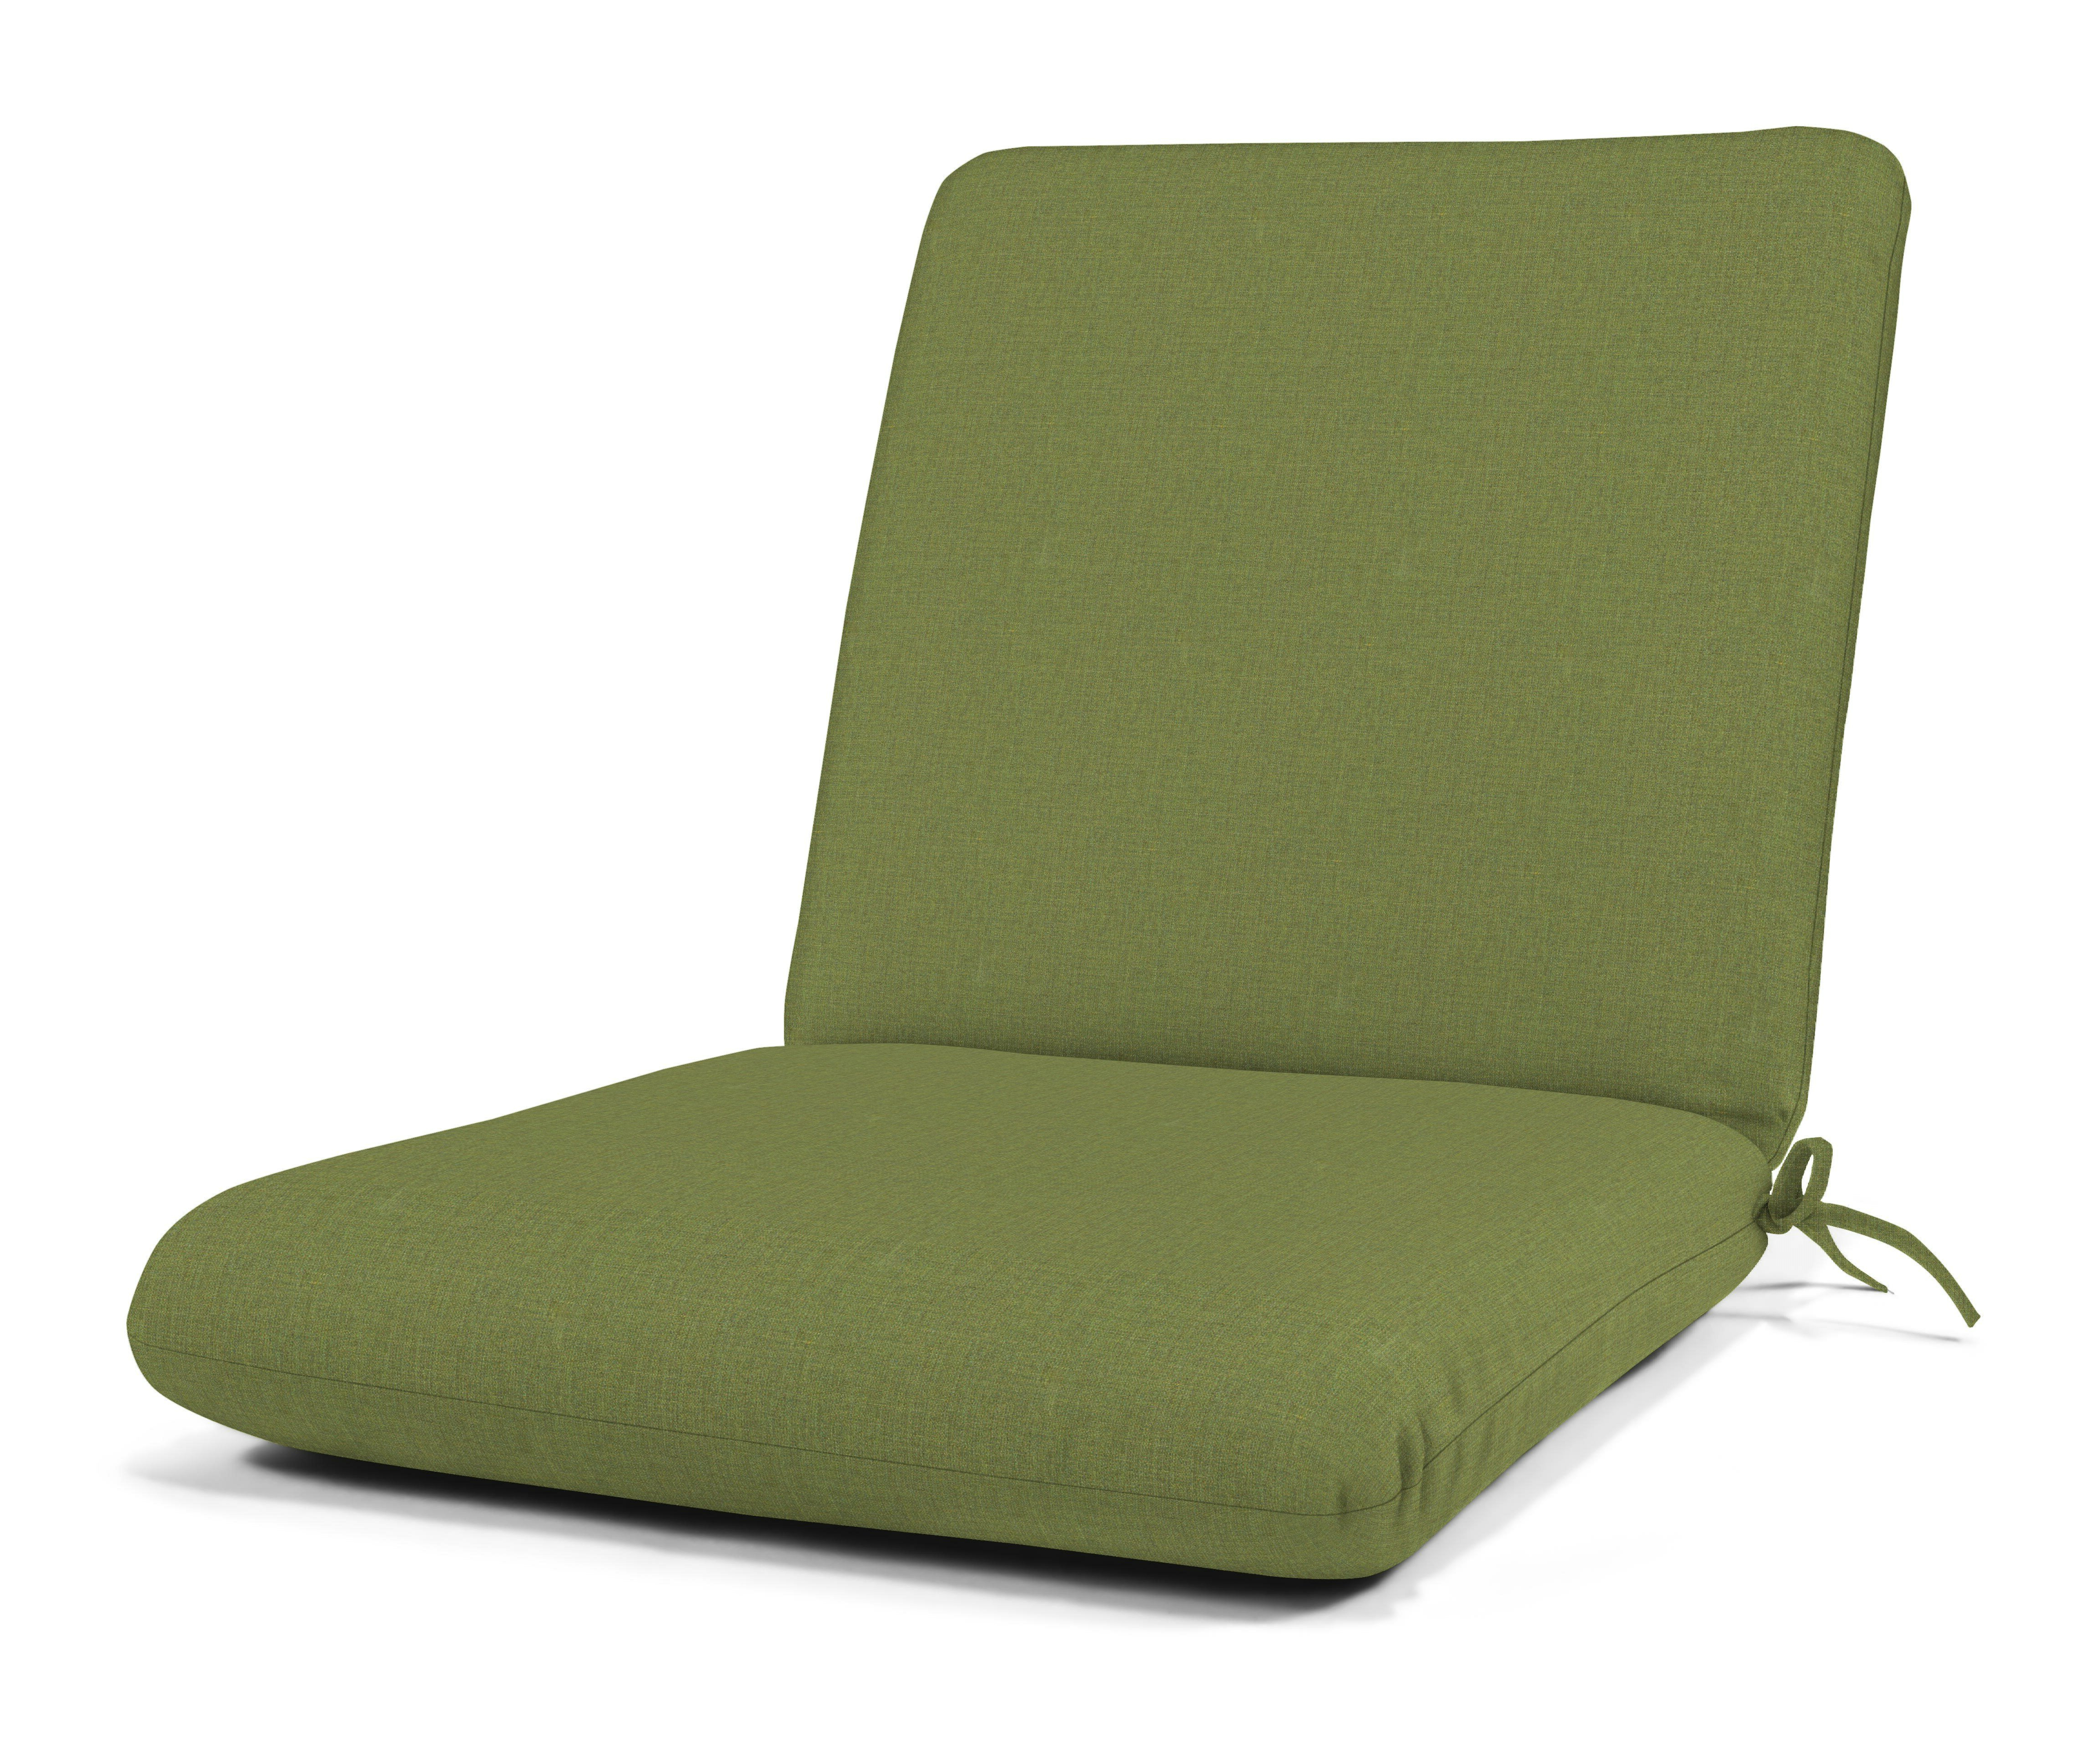 Recent Indoor Outdoor Textured Bright Chaise Lounges With Sunbrella Fabric Regarding Indoor/outdoor Sunbrella Club Chair Cushion (View 8 of 25)